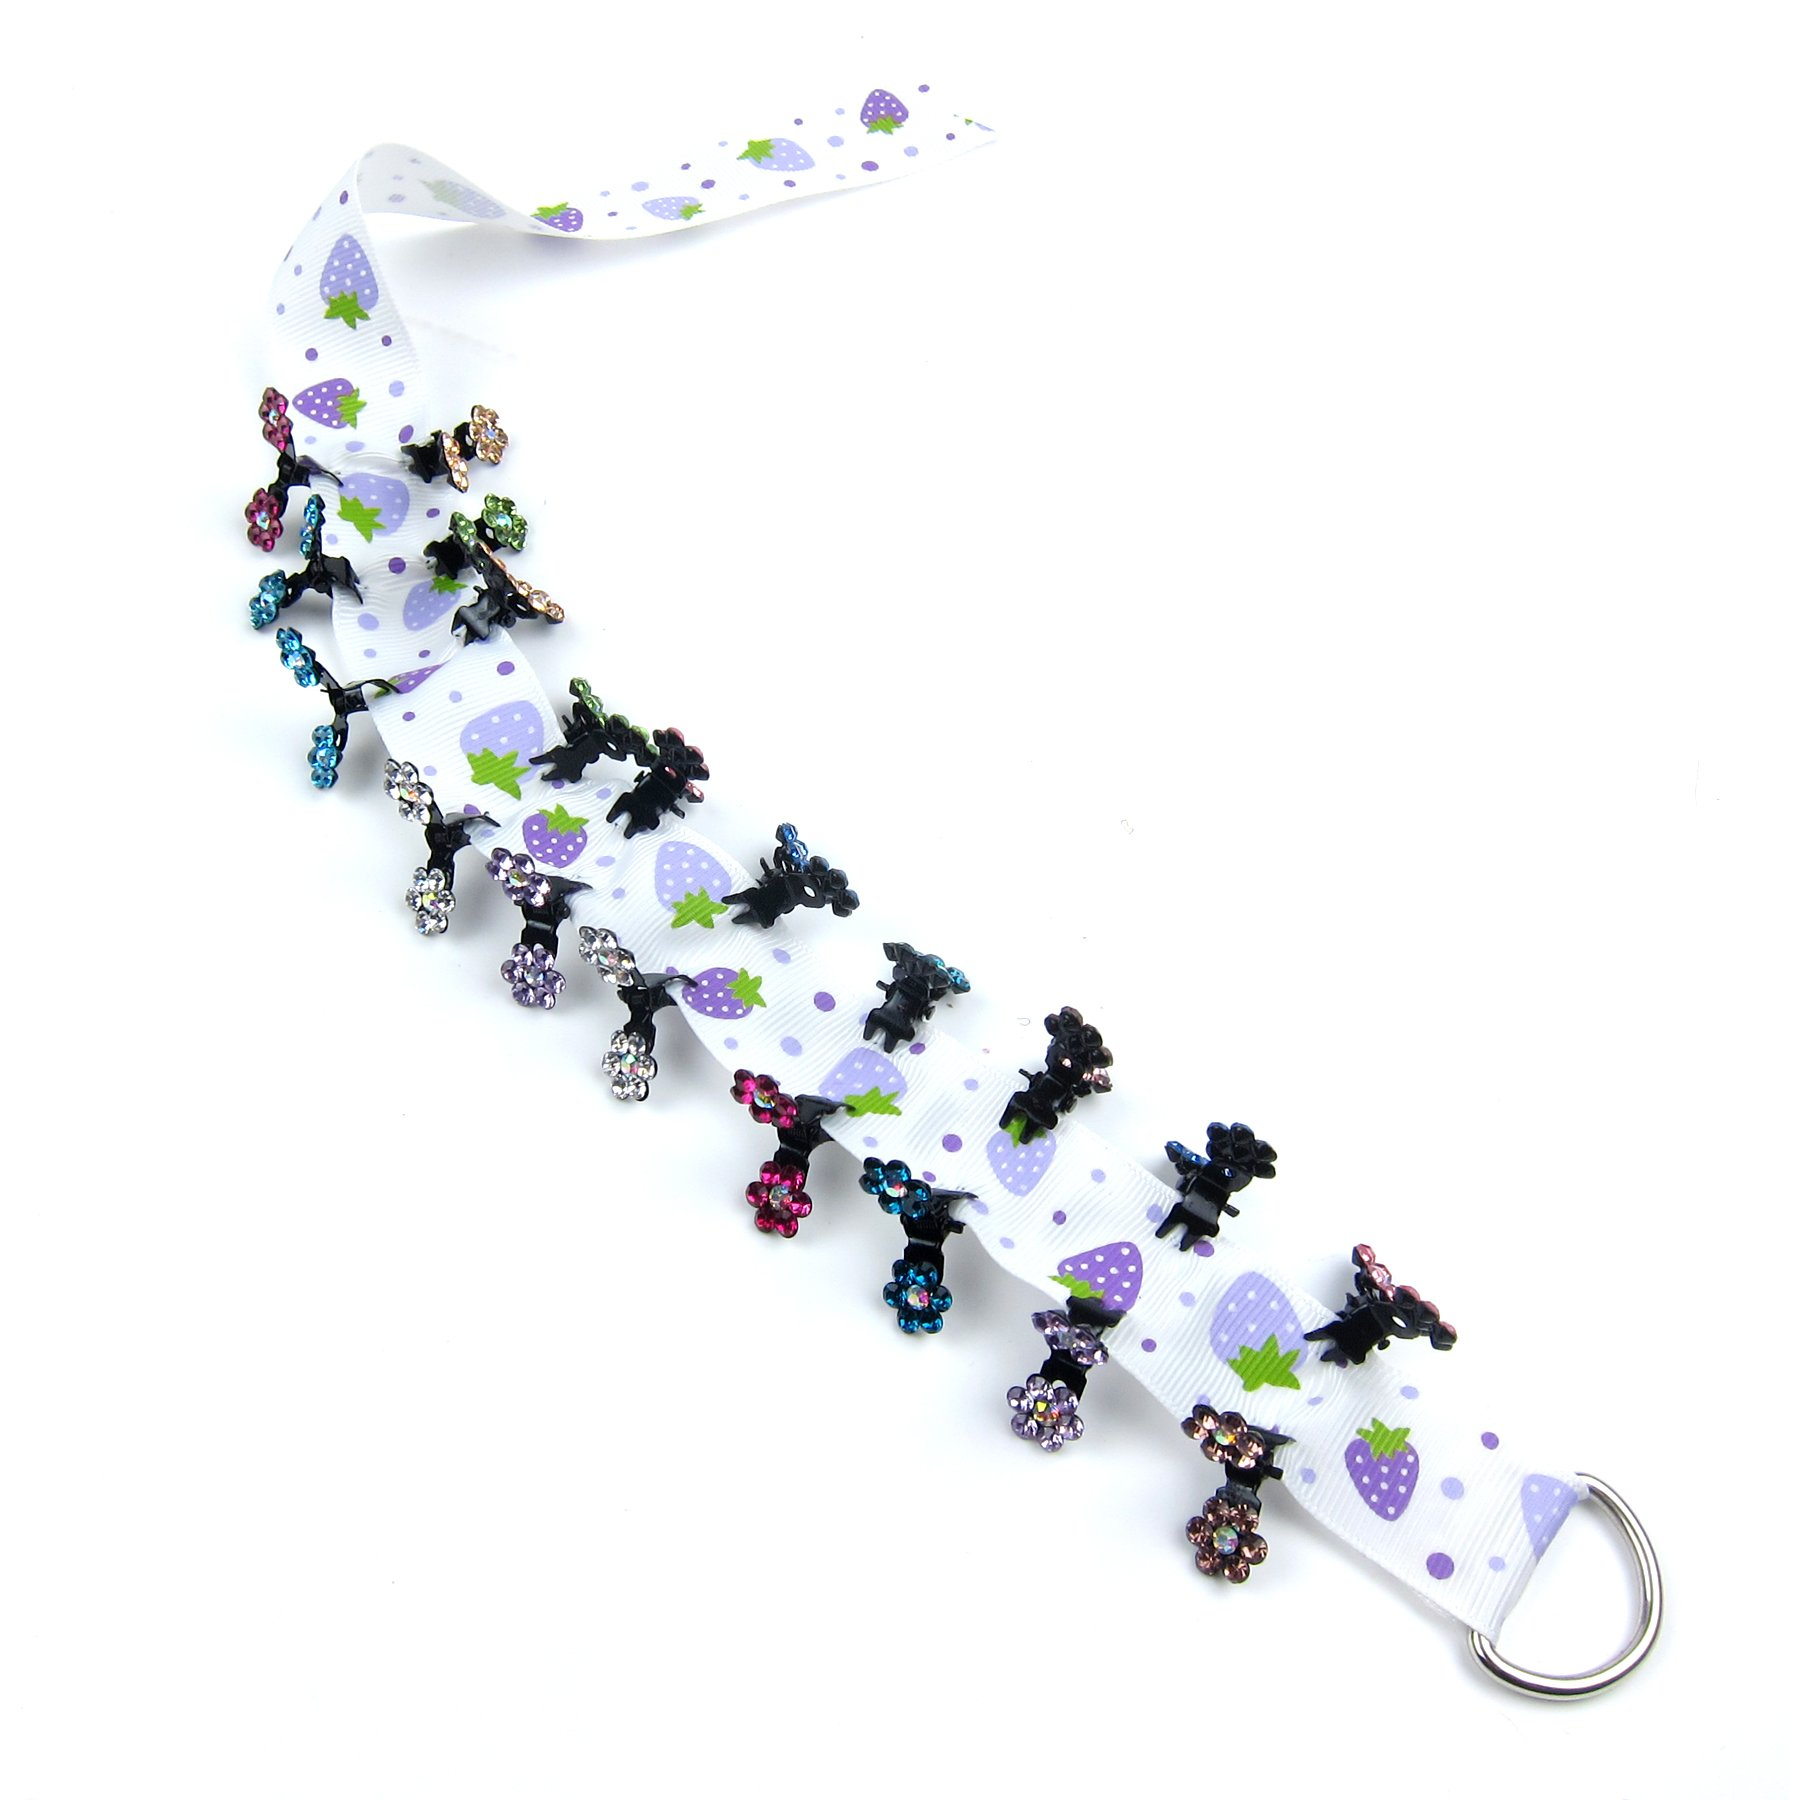 Alfie Pet by Petoga Couture - Dasie Rhinestone Flower Hair Clip 20-Piece Set for Dogs, Cats and Small Animals by Alfie (Image #6)